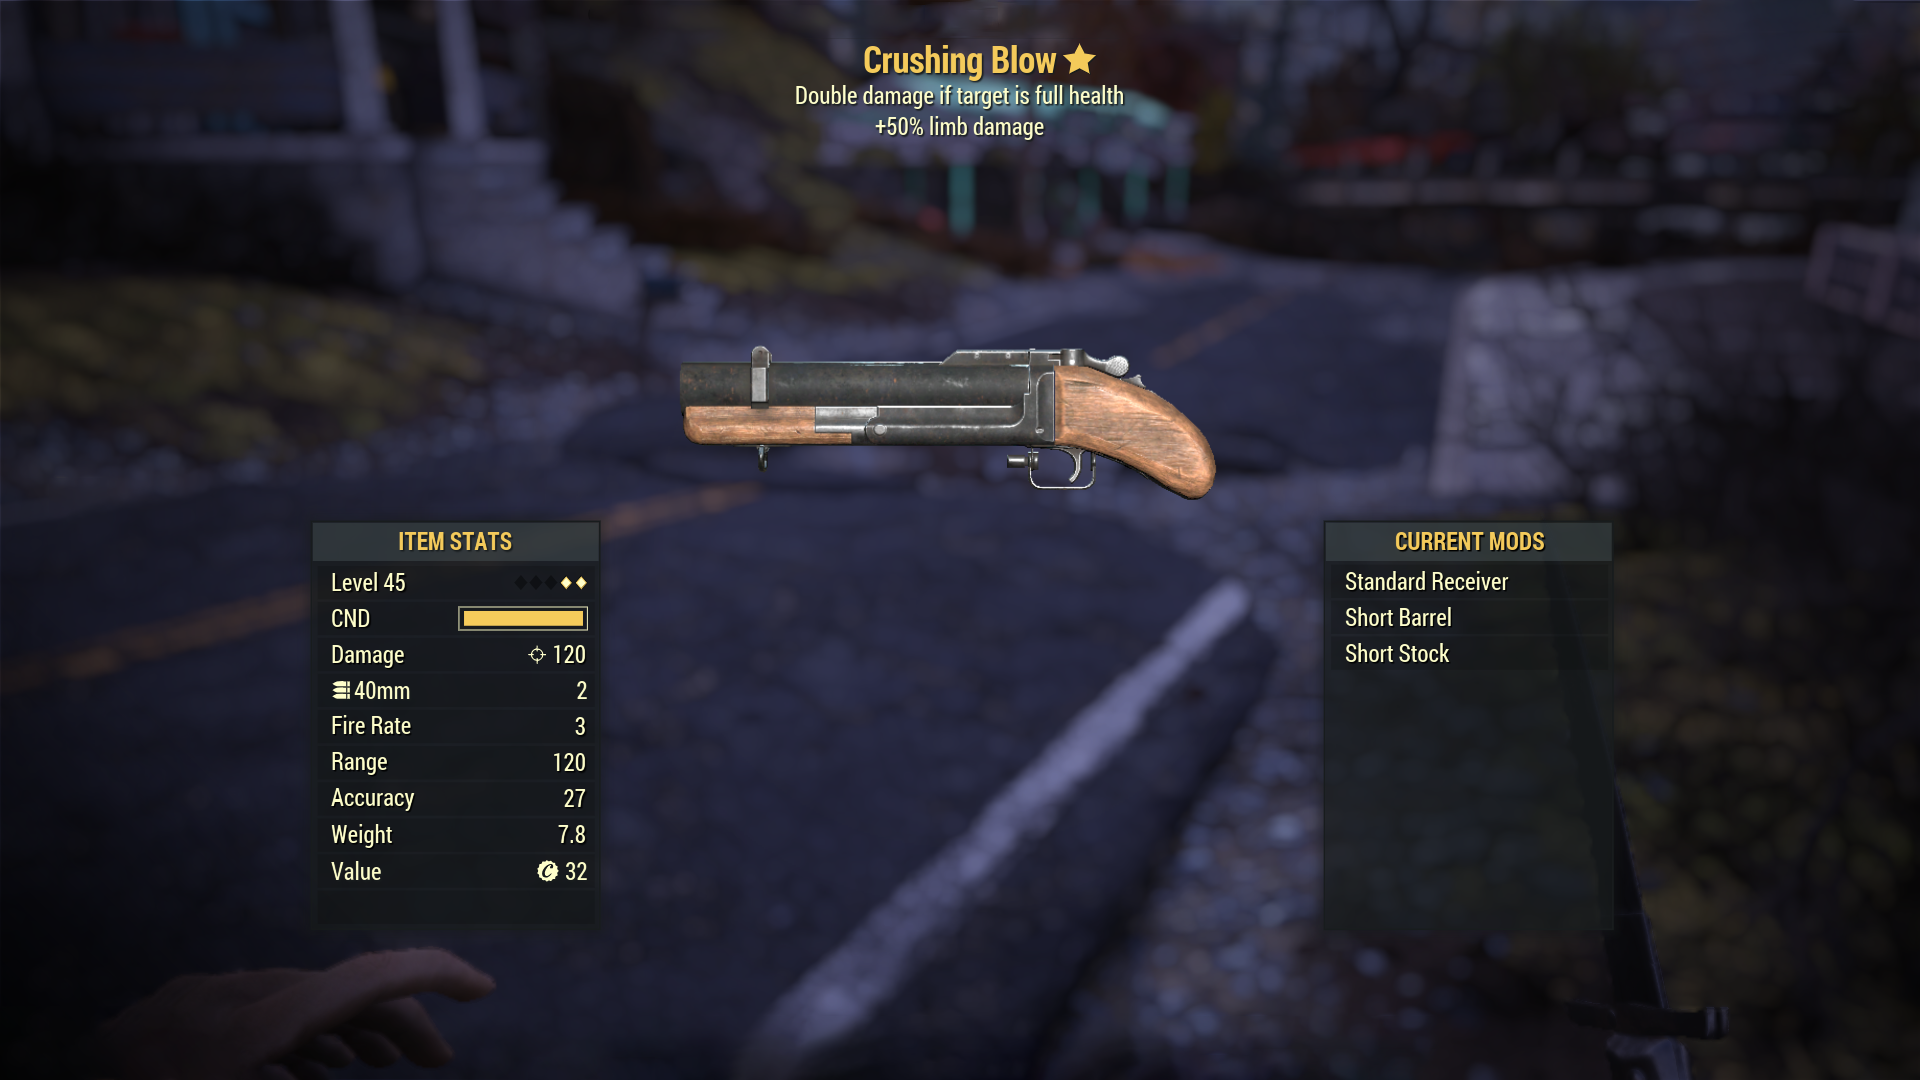 Survival M79 CrushingBlow